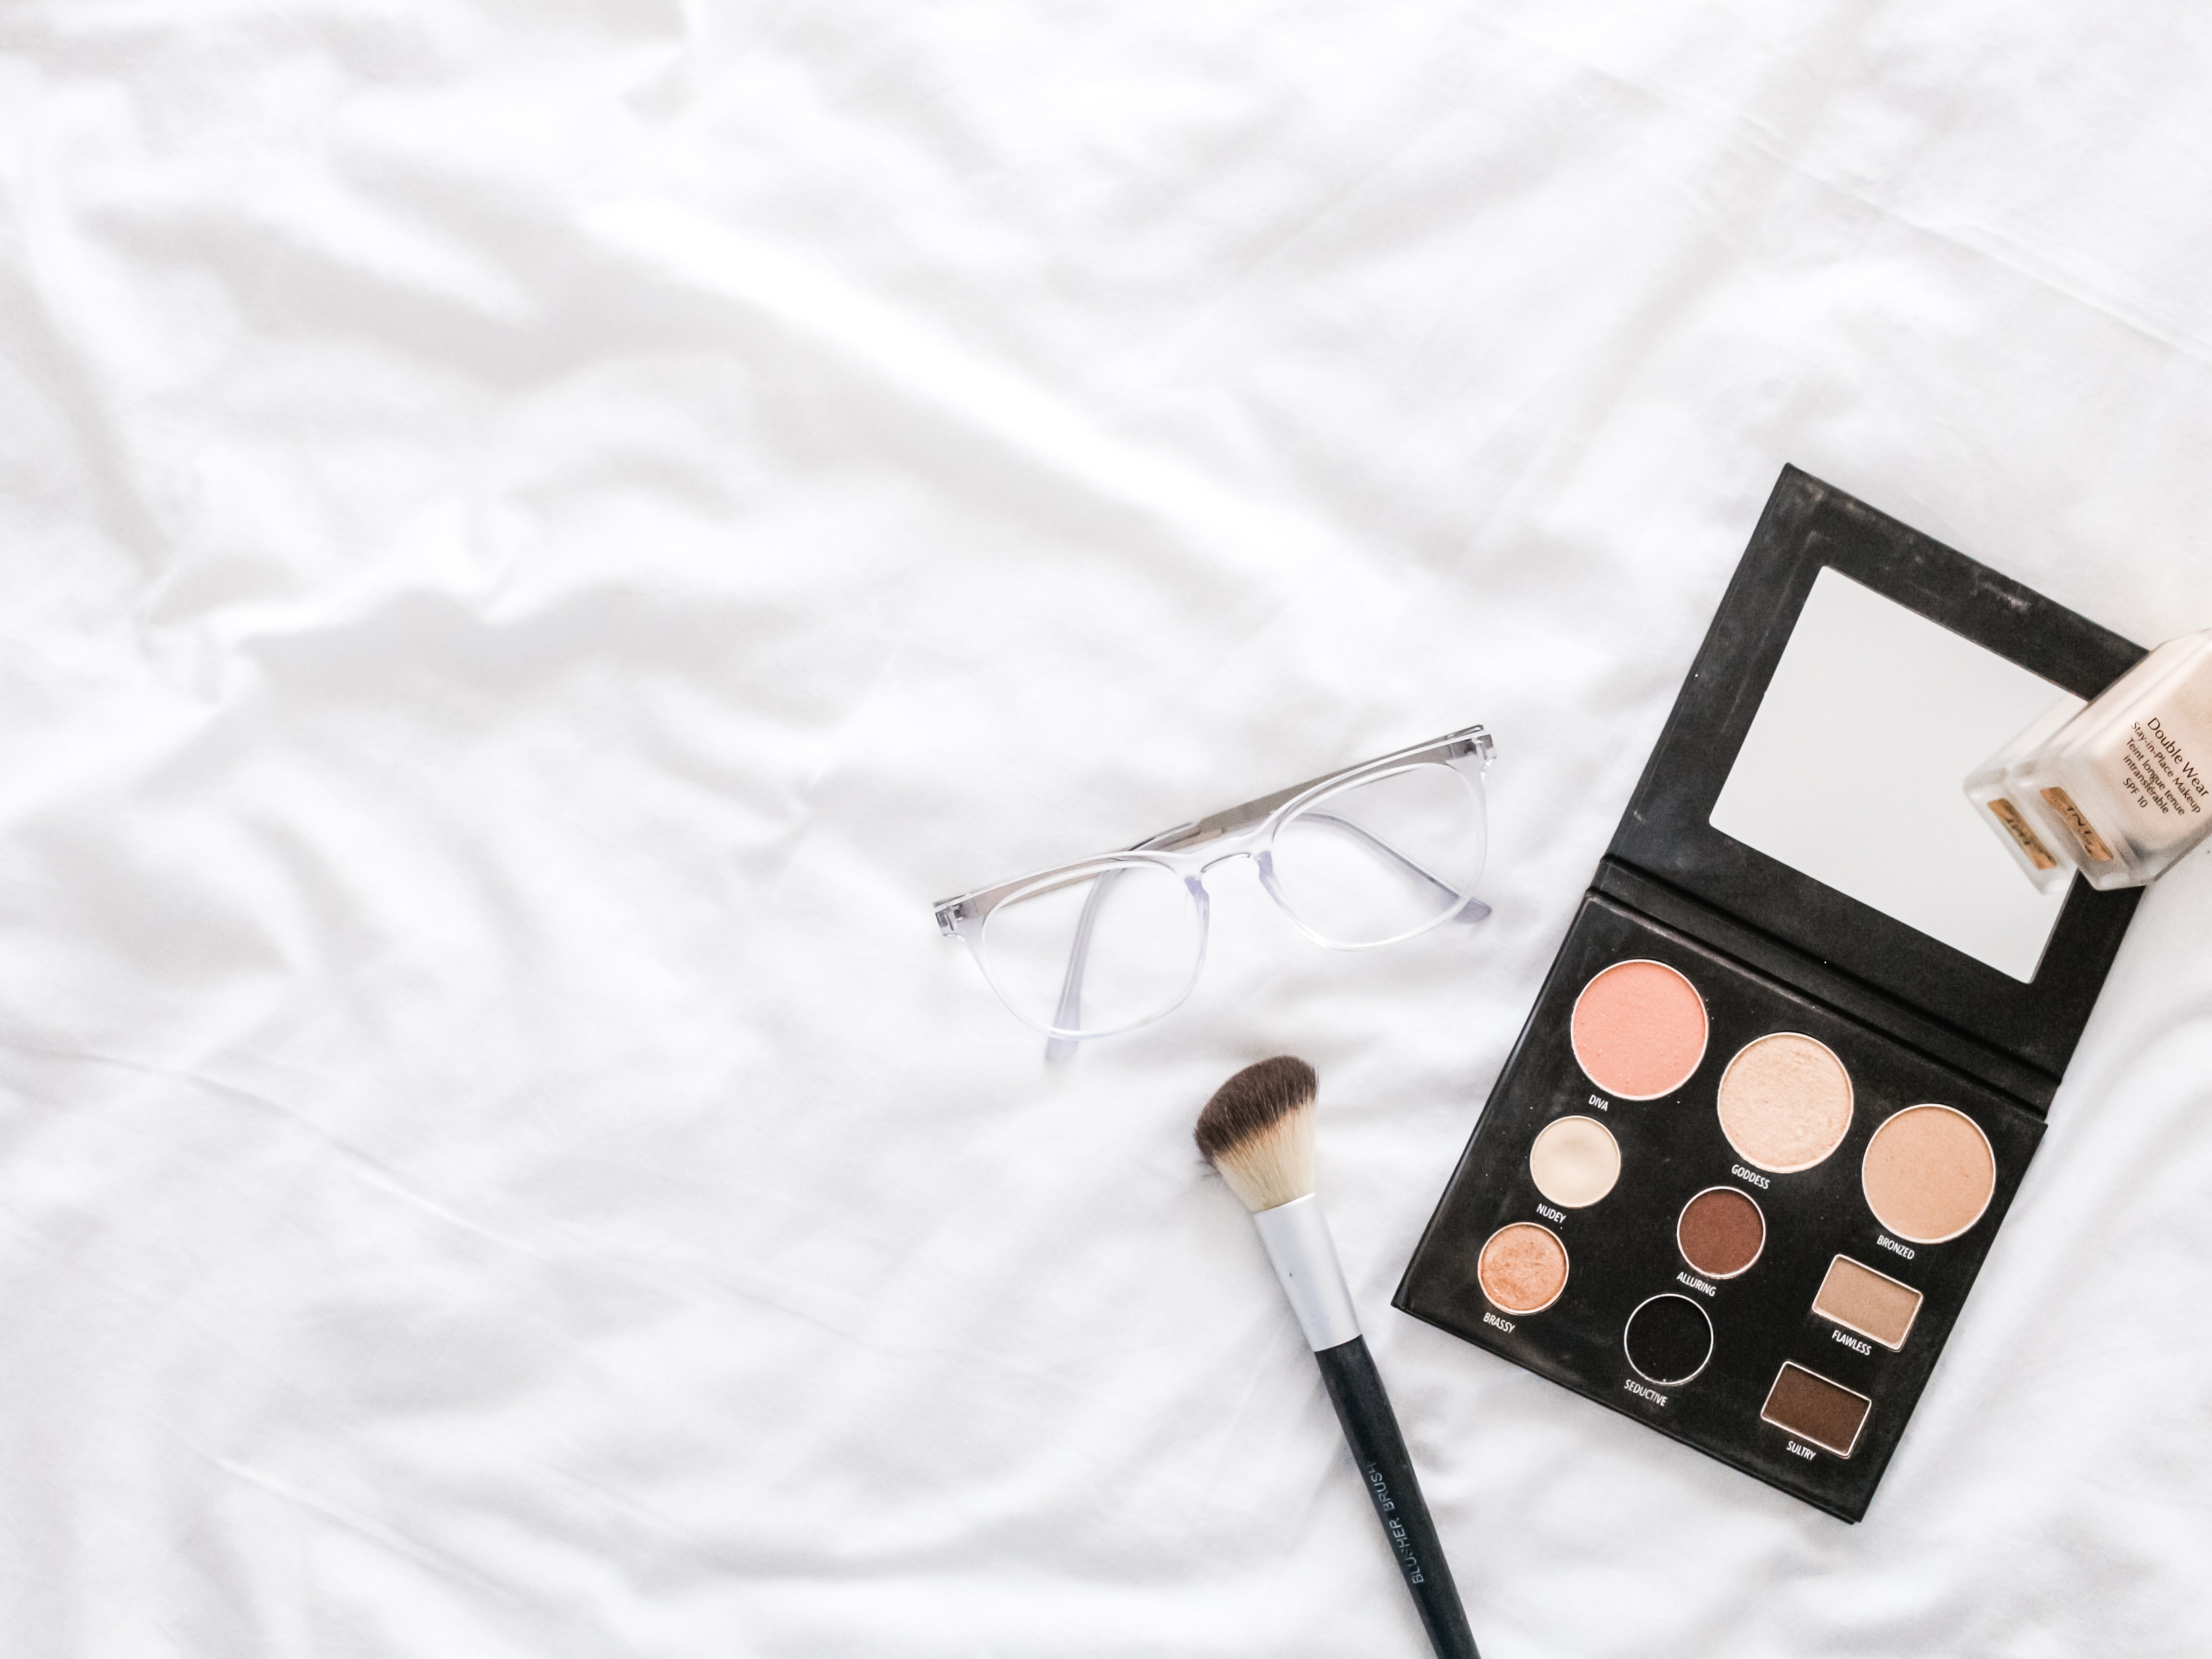 makeup palette and brush